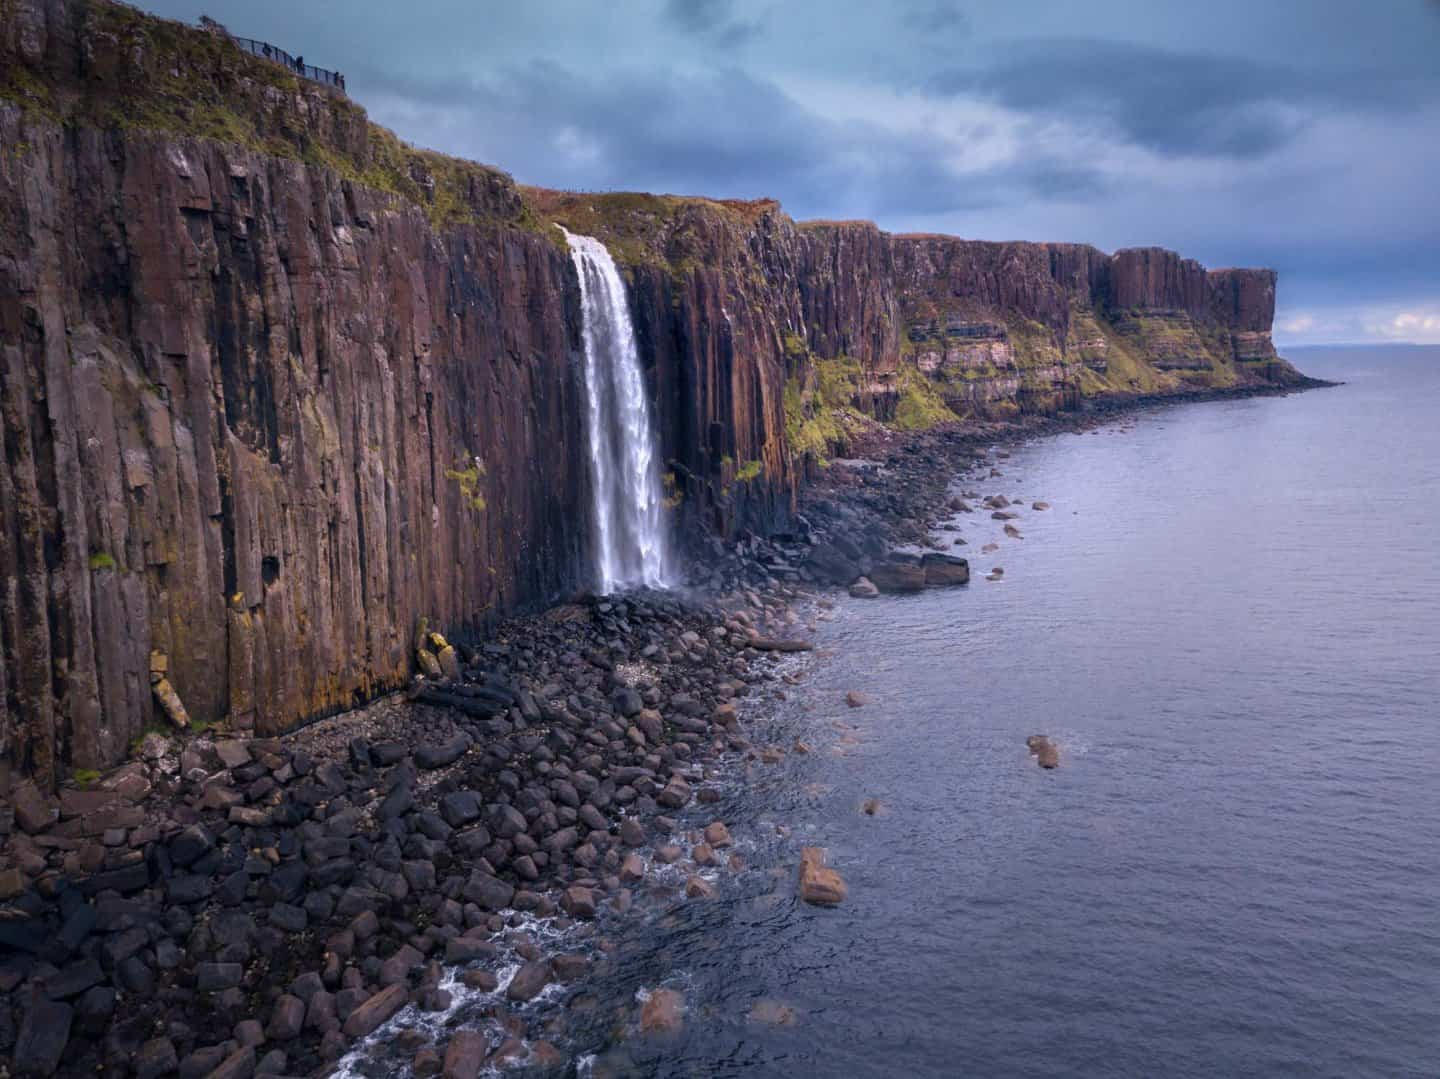 A quick stop during 10 days in Scotland is Mealt Falls as it spills into the ocean.